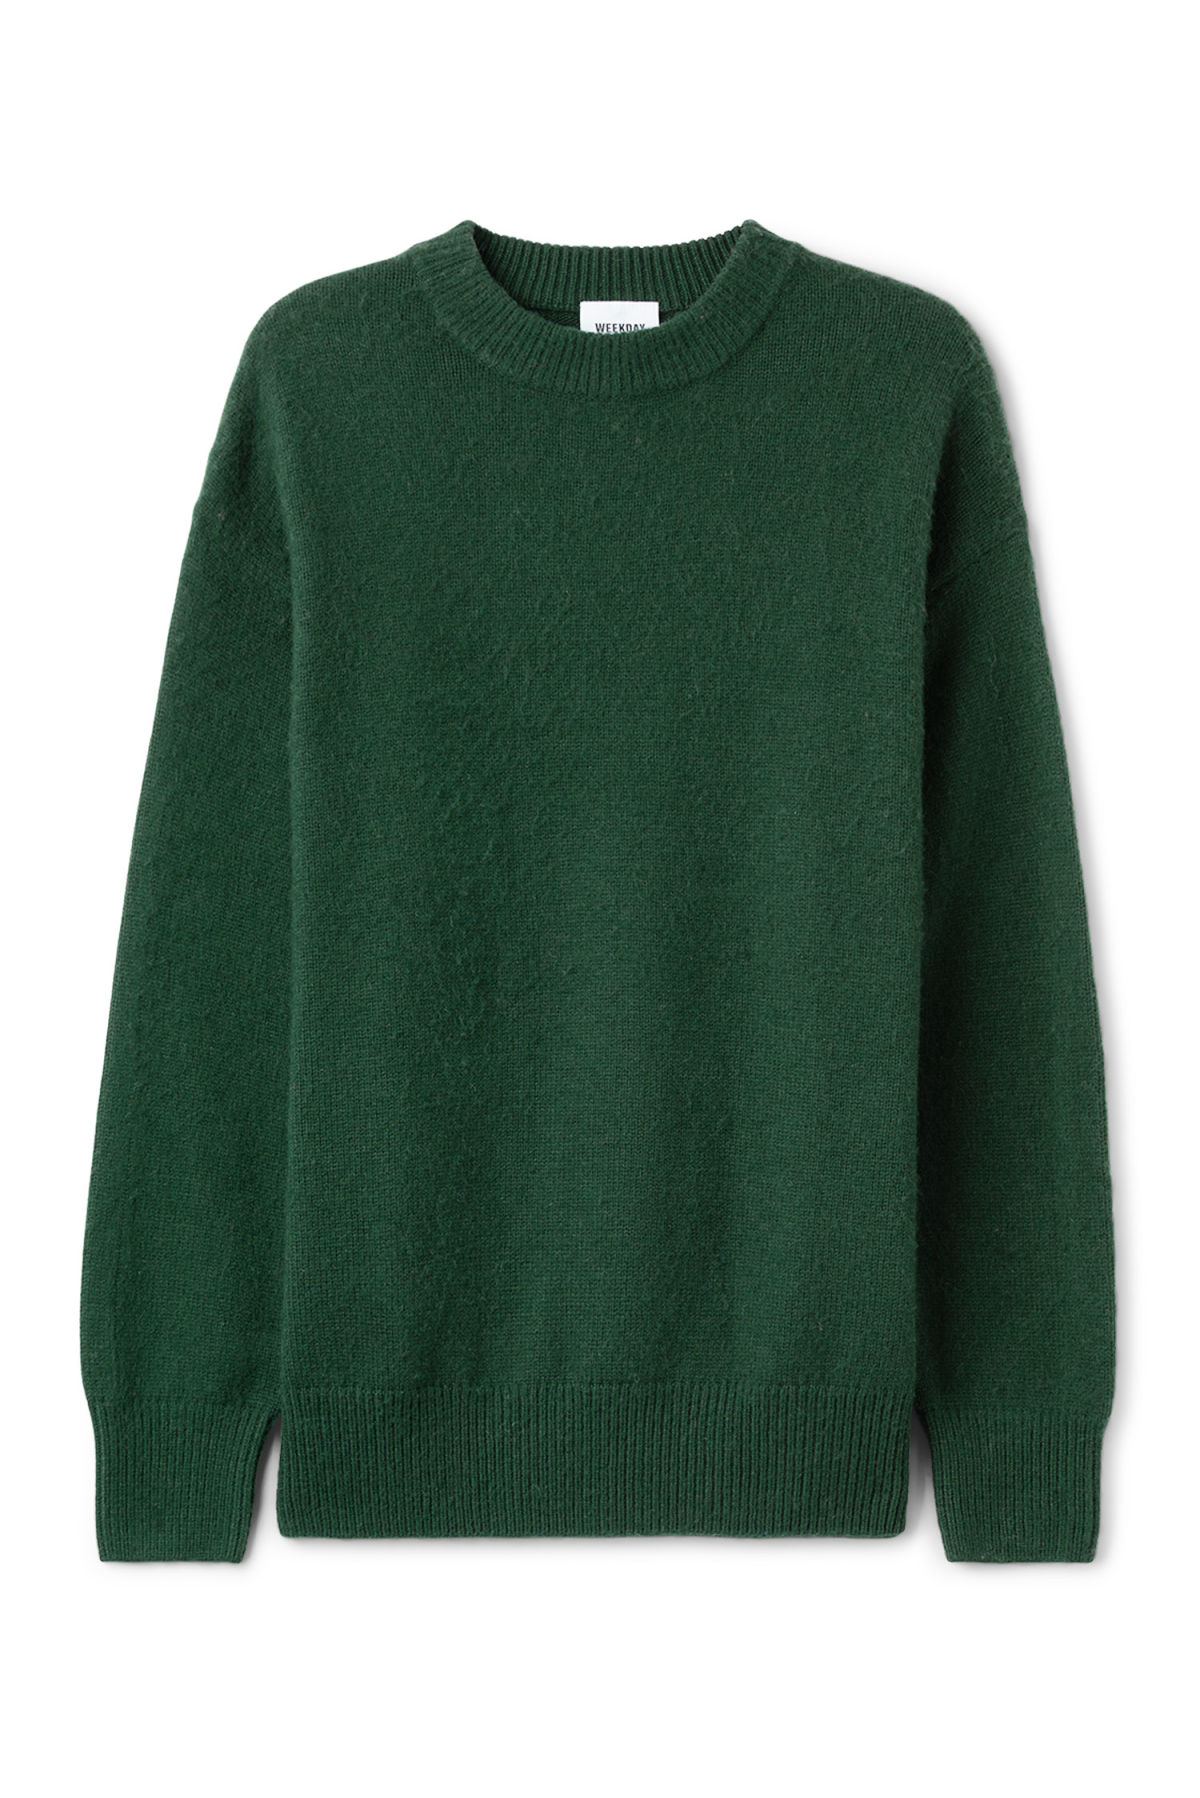 Ken Sweater - Green - Sweaters - Weekday